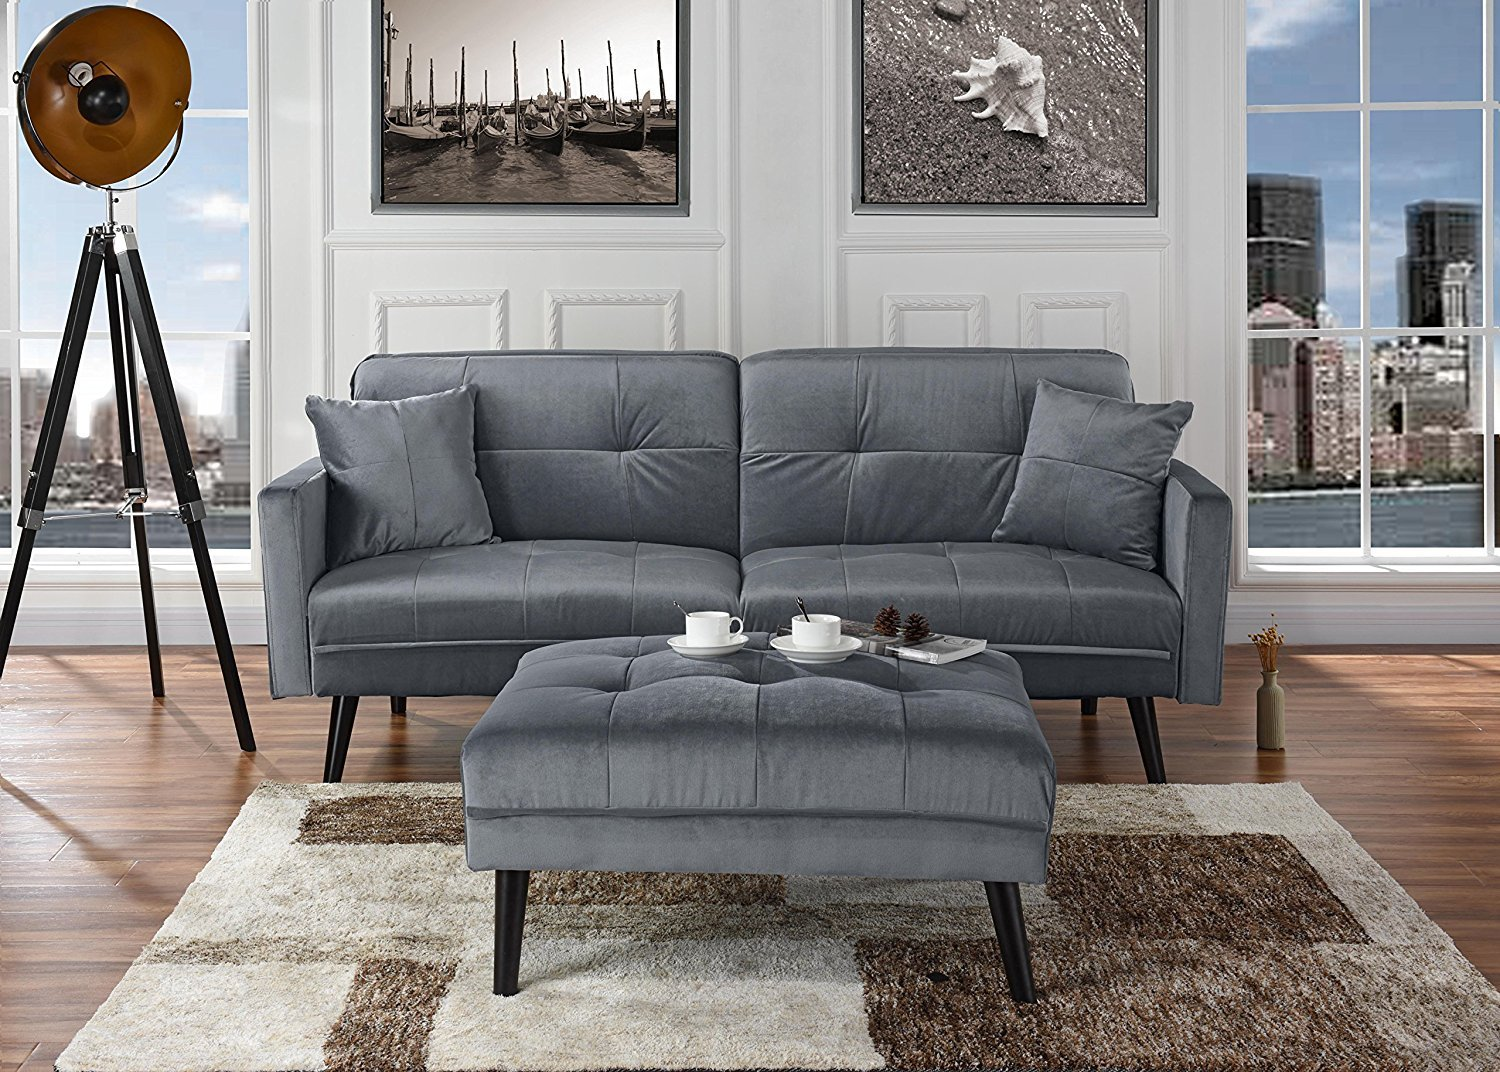 Admirable Details About Light Grey Brush Microfiber Futon Sofa Bed Living Room Sleeper With Ottoman Ibusinesslaw Wood Chair Design Ideas Ibusinesslaworg